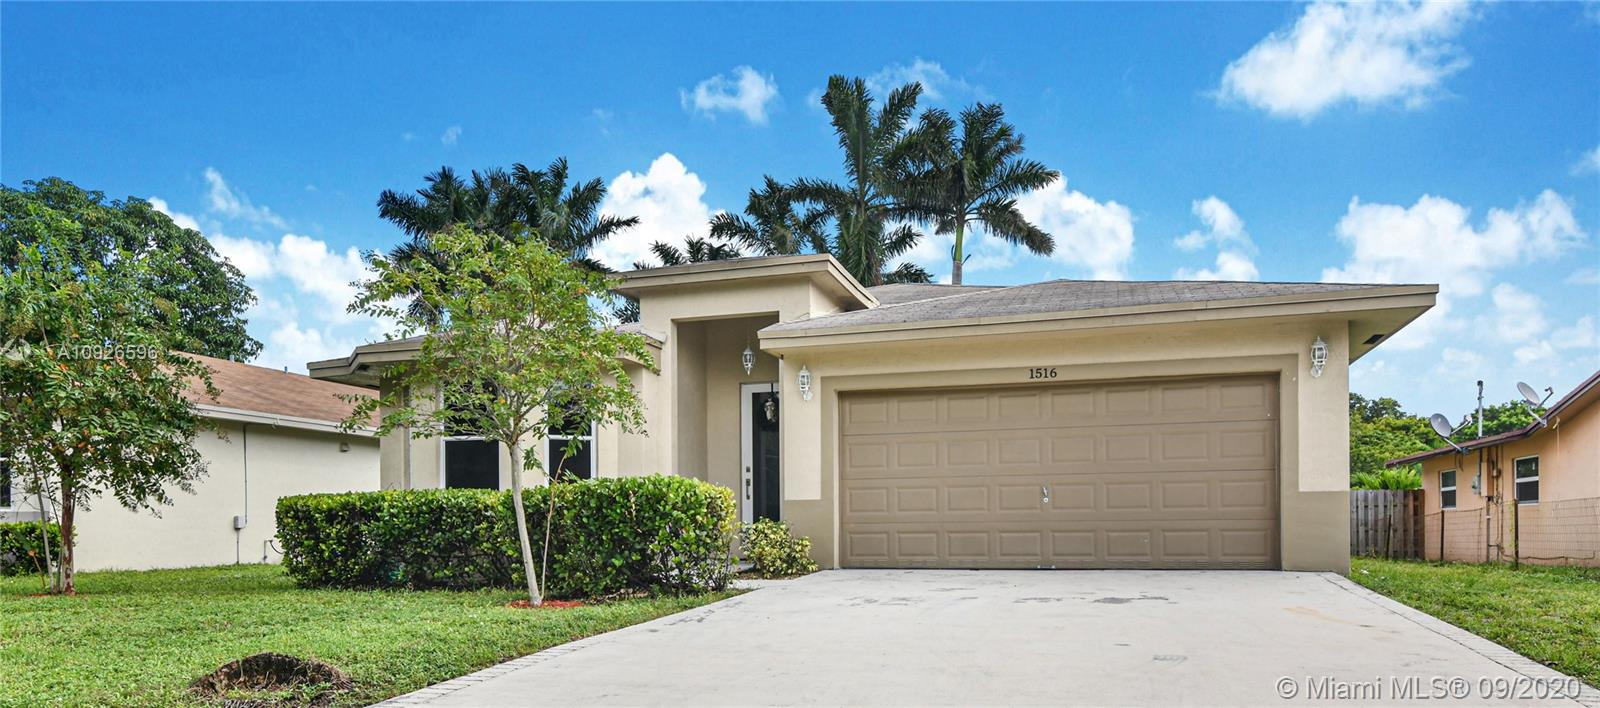 1516 SW 29th Ter  For Sale A10926596, FL